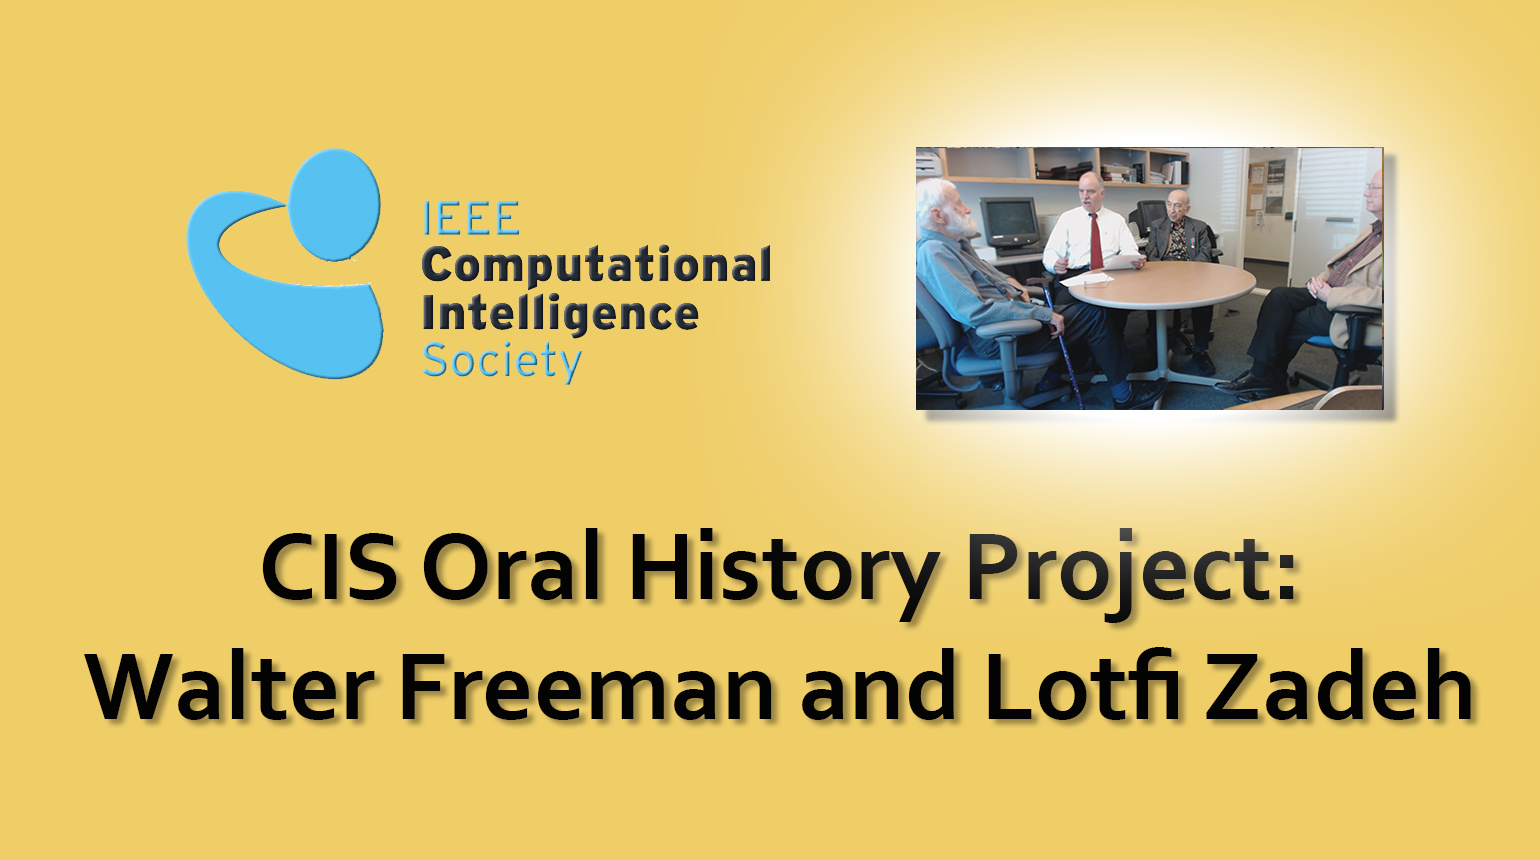 Interview with Walter Freeman and Lotfi Zadeh: CIS Oral History Project